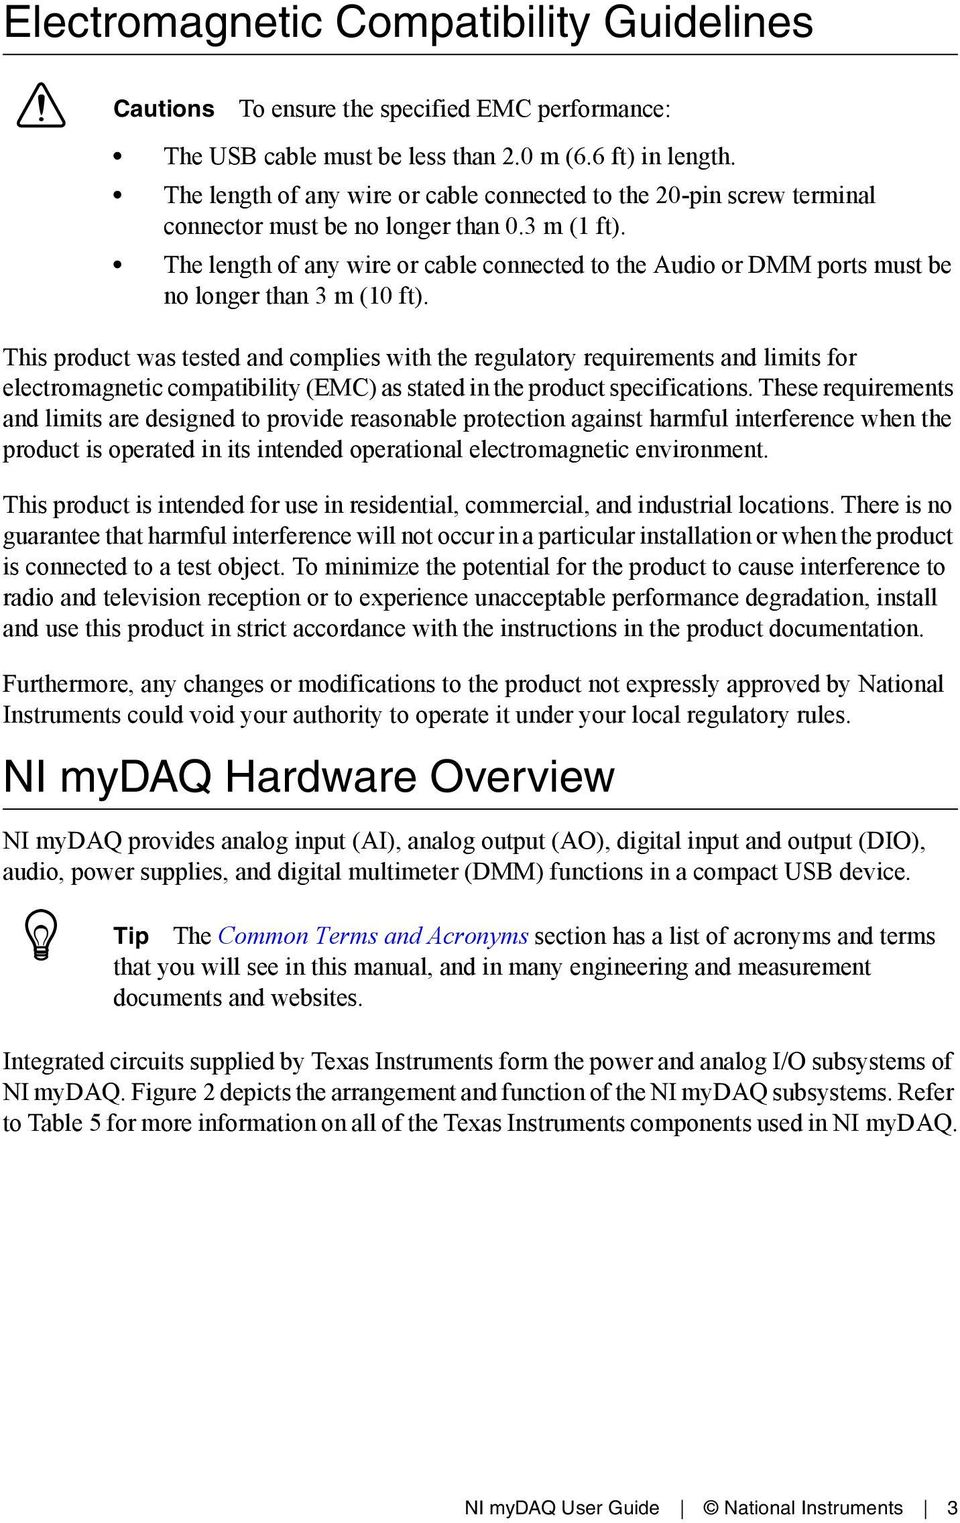 Nicom Manuals Figure 1 Ni Mydaq Power Supply Usb Current Limiter Texas Instruments Circuit Experiments For Experiment User Guide National 3 The Length Of Any Wire Or Cable Connected To Audio Dmm Ports Must Be